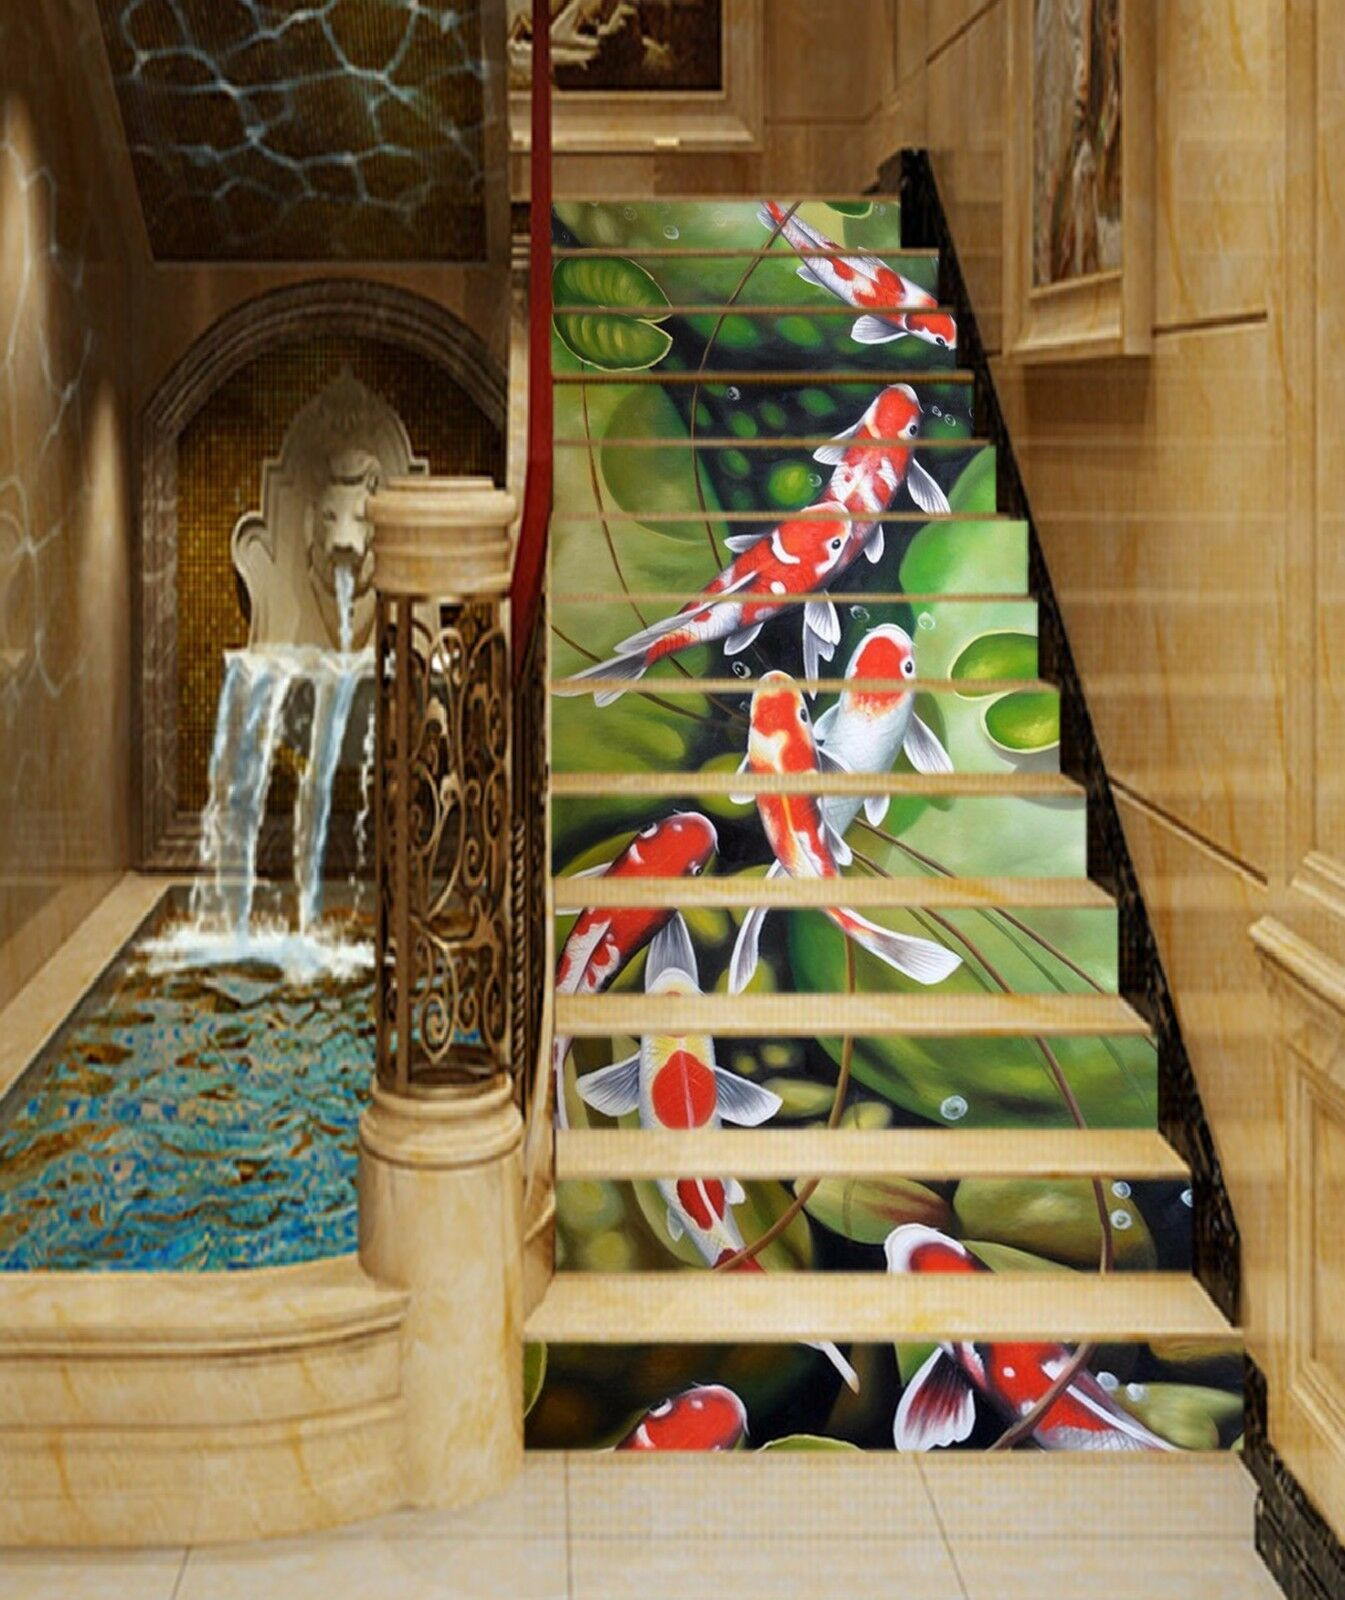 POOL 3D poisson en pierre 401 contremarches Décoration Photo Murale Autocollant Vinyle Papier Peint US